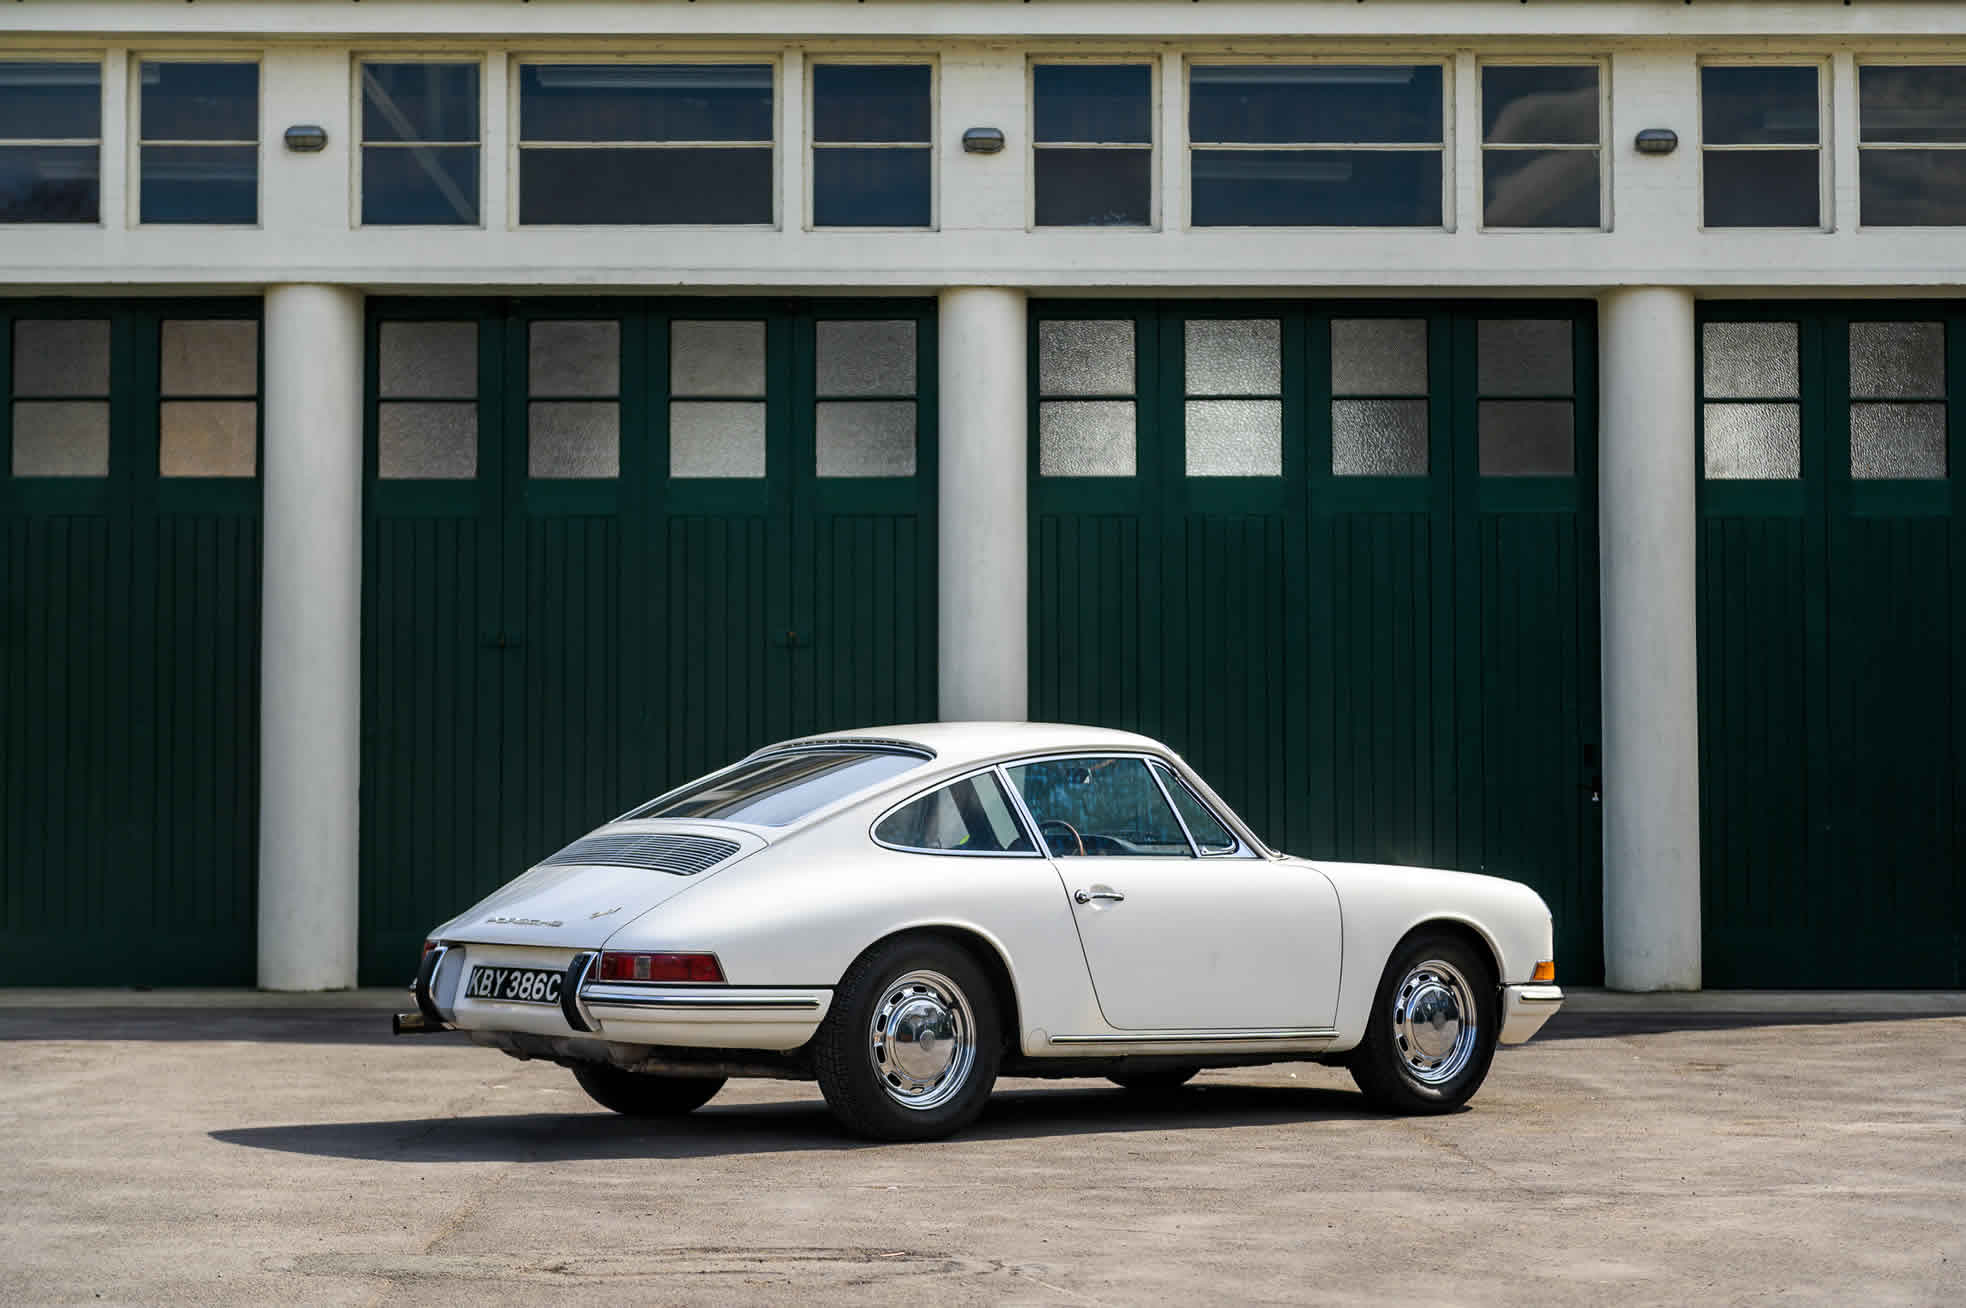 For Sale, 1965 Porsche 911, sports purpose rear quarter view